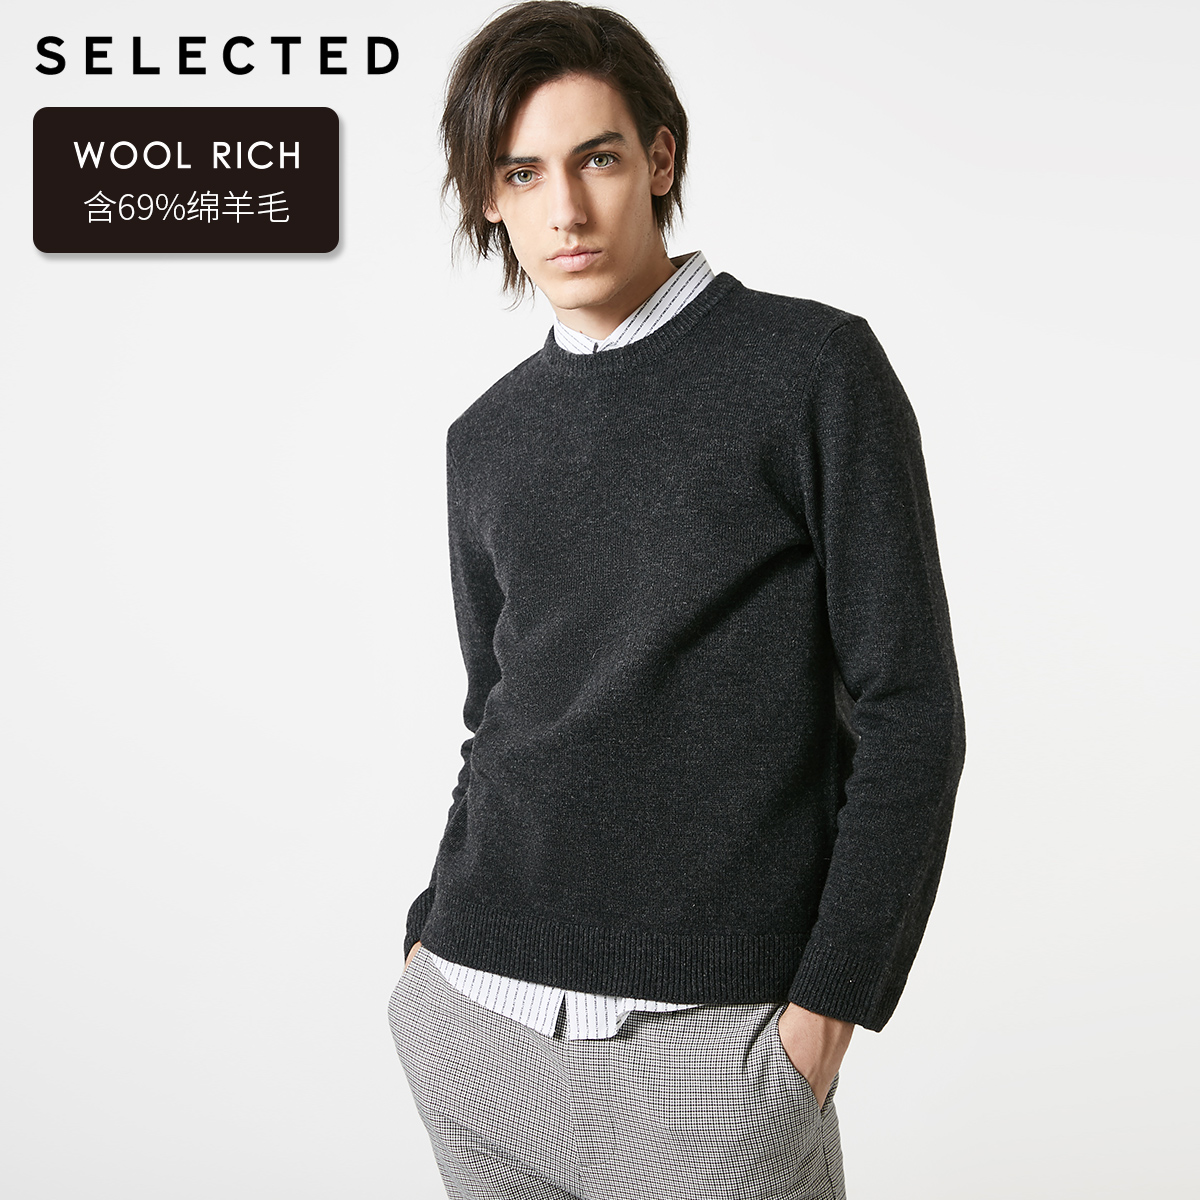 SELECTED Men's Winter Round Neckline Wool Pullover Sweater New Woolen Knitted Clothes S | 419125503